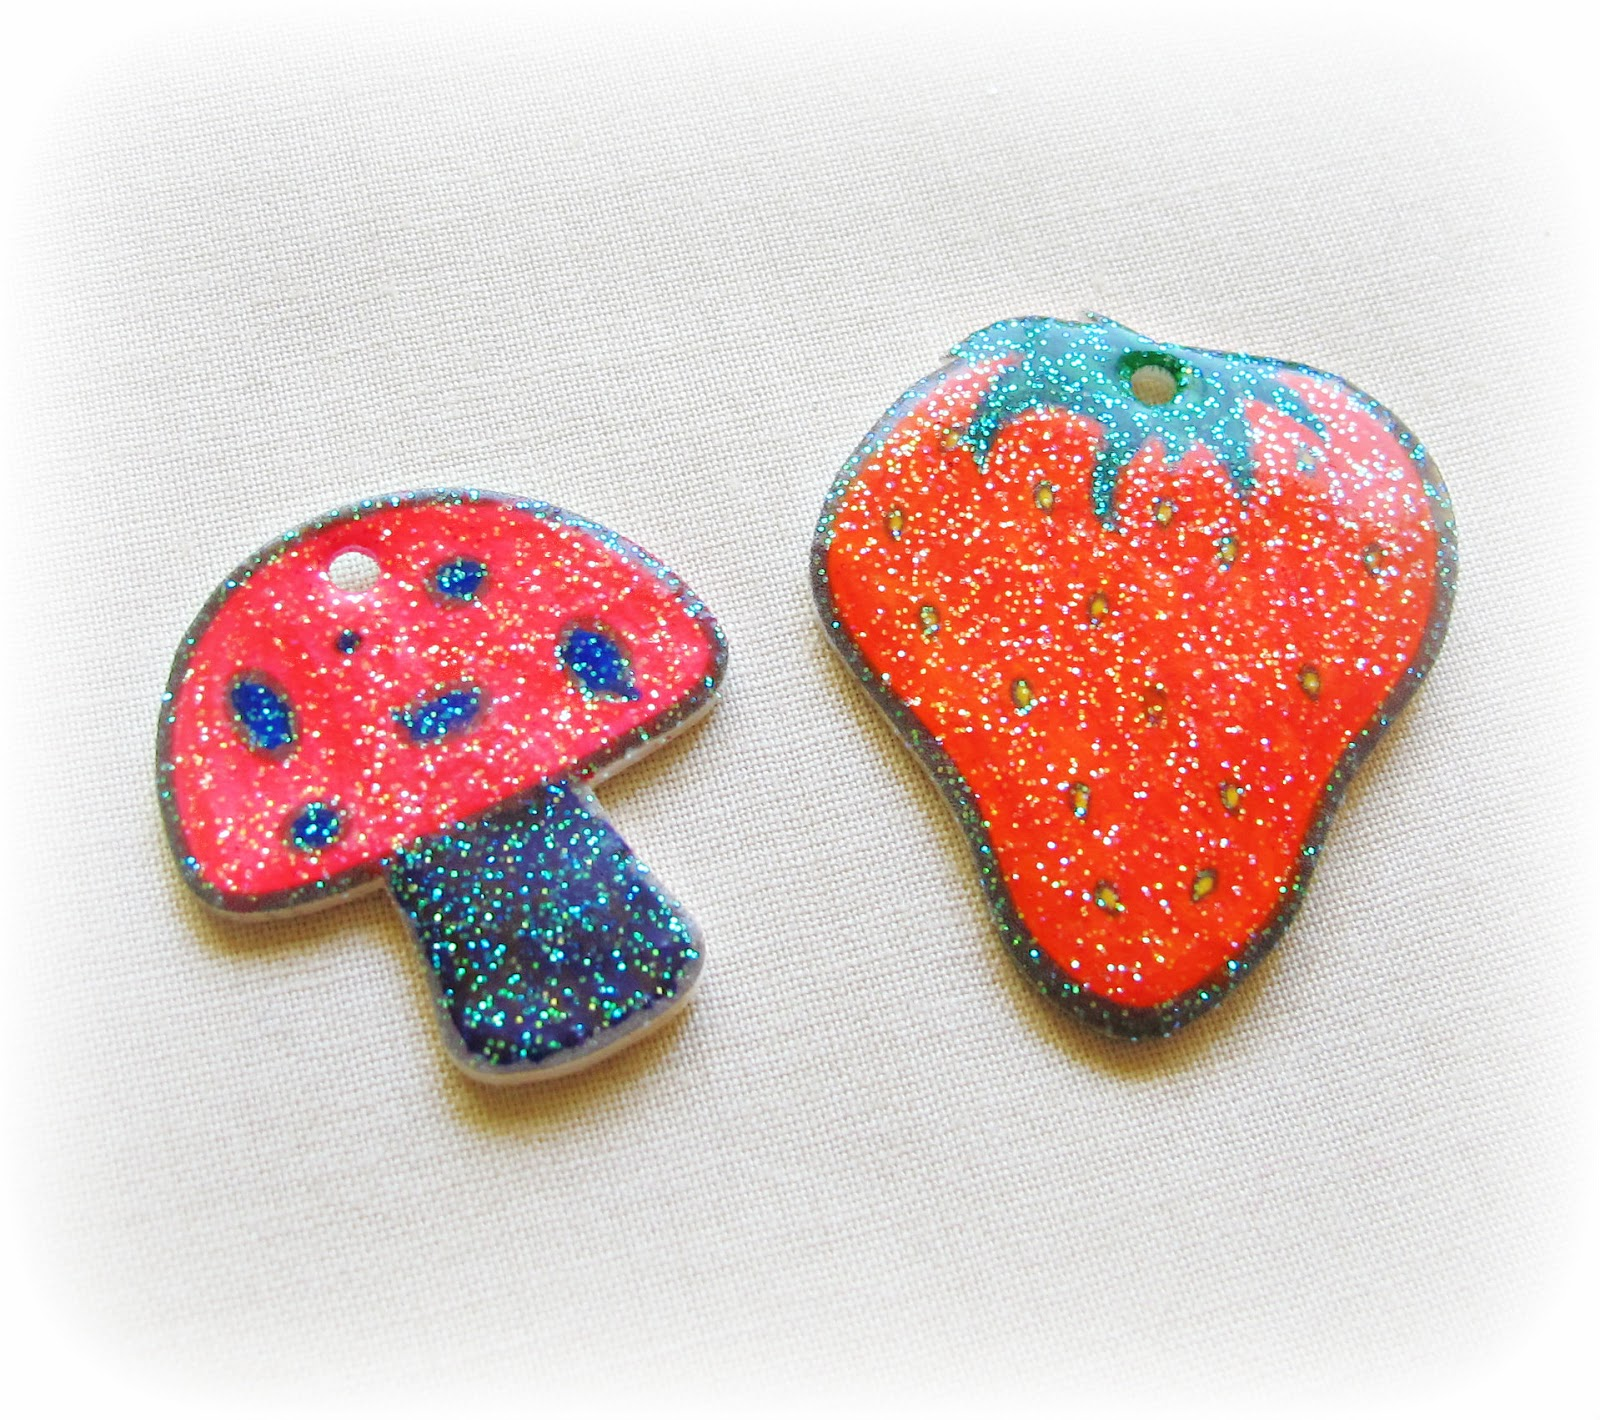 image shrinkies shrink plastic grafix mushroom strawberry seal shrinkies with clear embossing powder